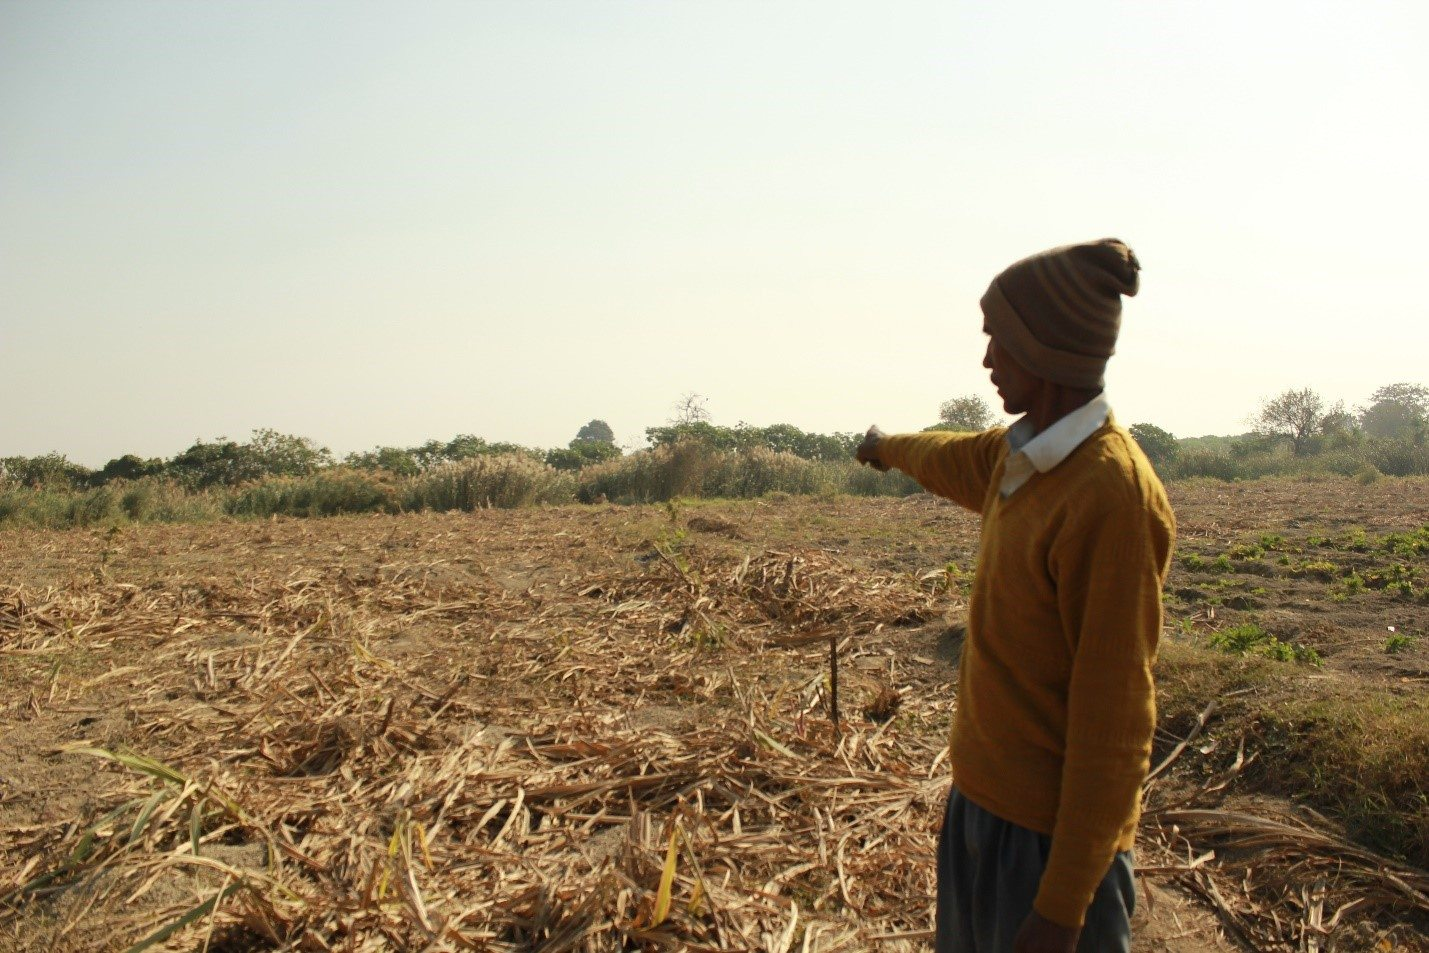 Keeno, a 52 year old farmer from Belagaon, showing the destroyed sugarcane harvest of his field.